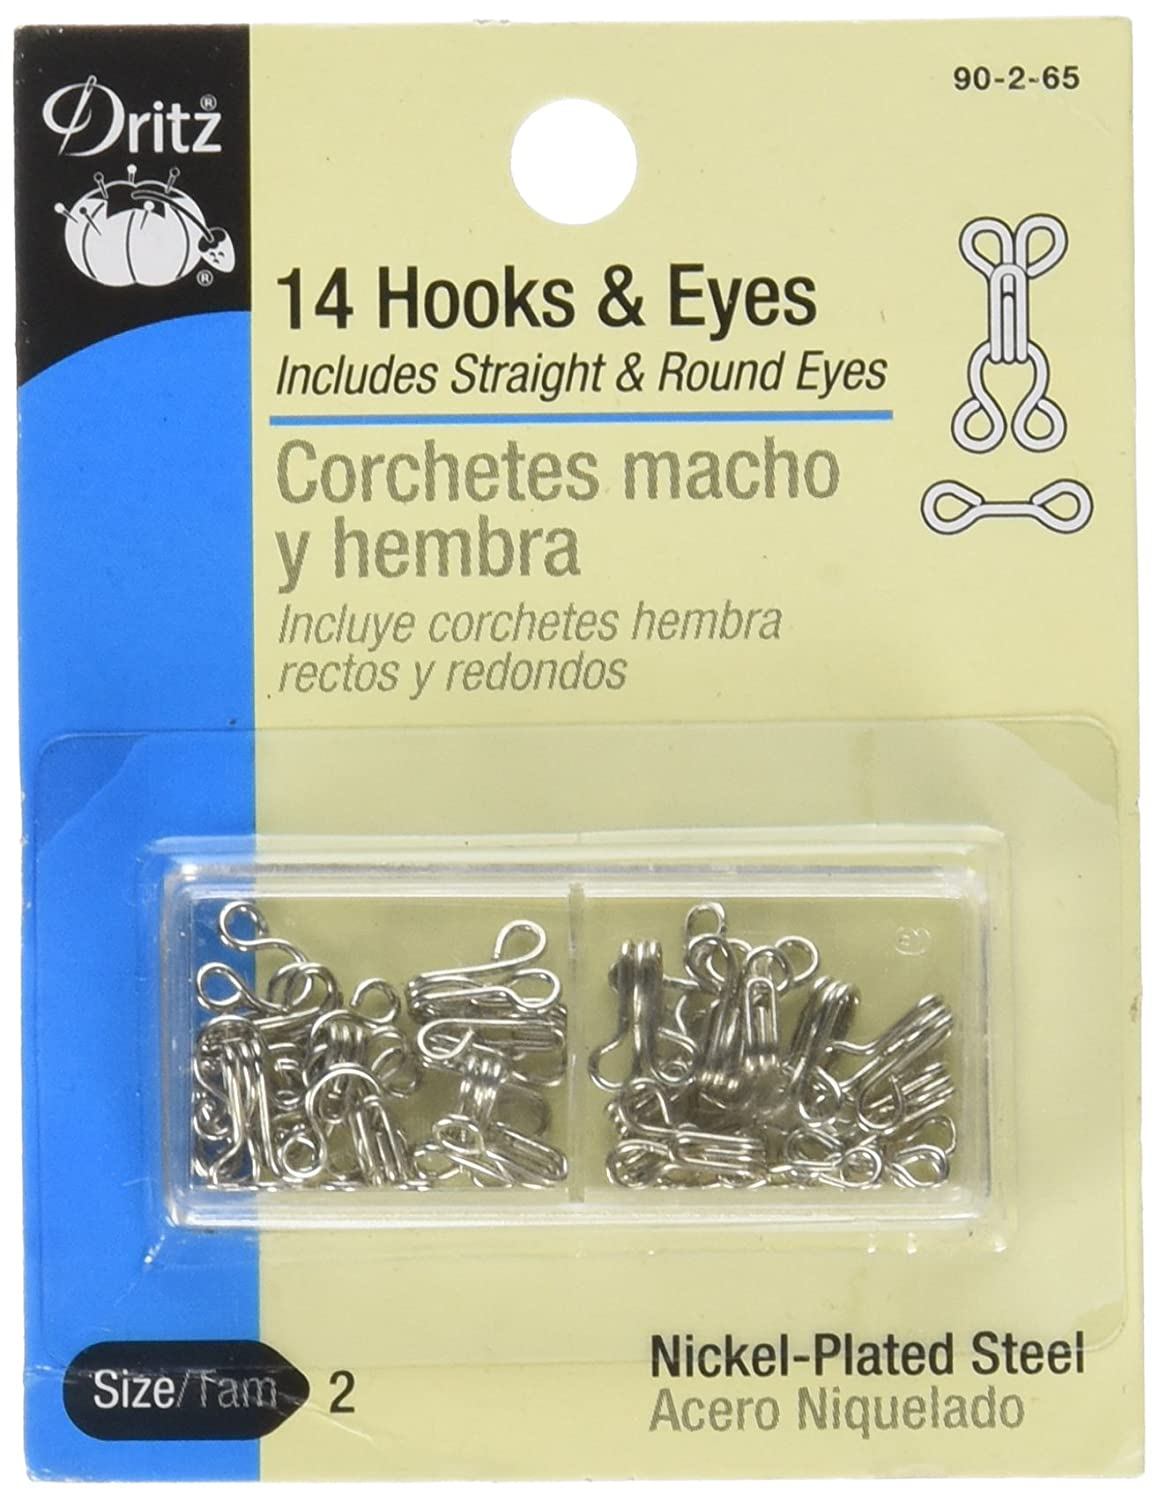 Dritz Hooks & Eyes Nickel Size 2 90-2-65